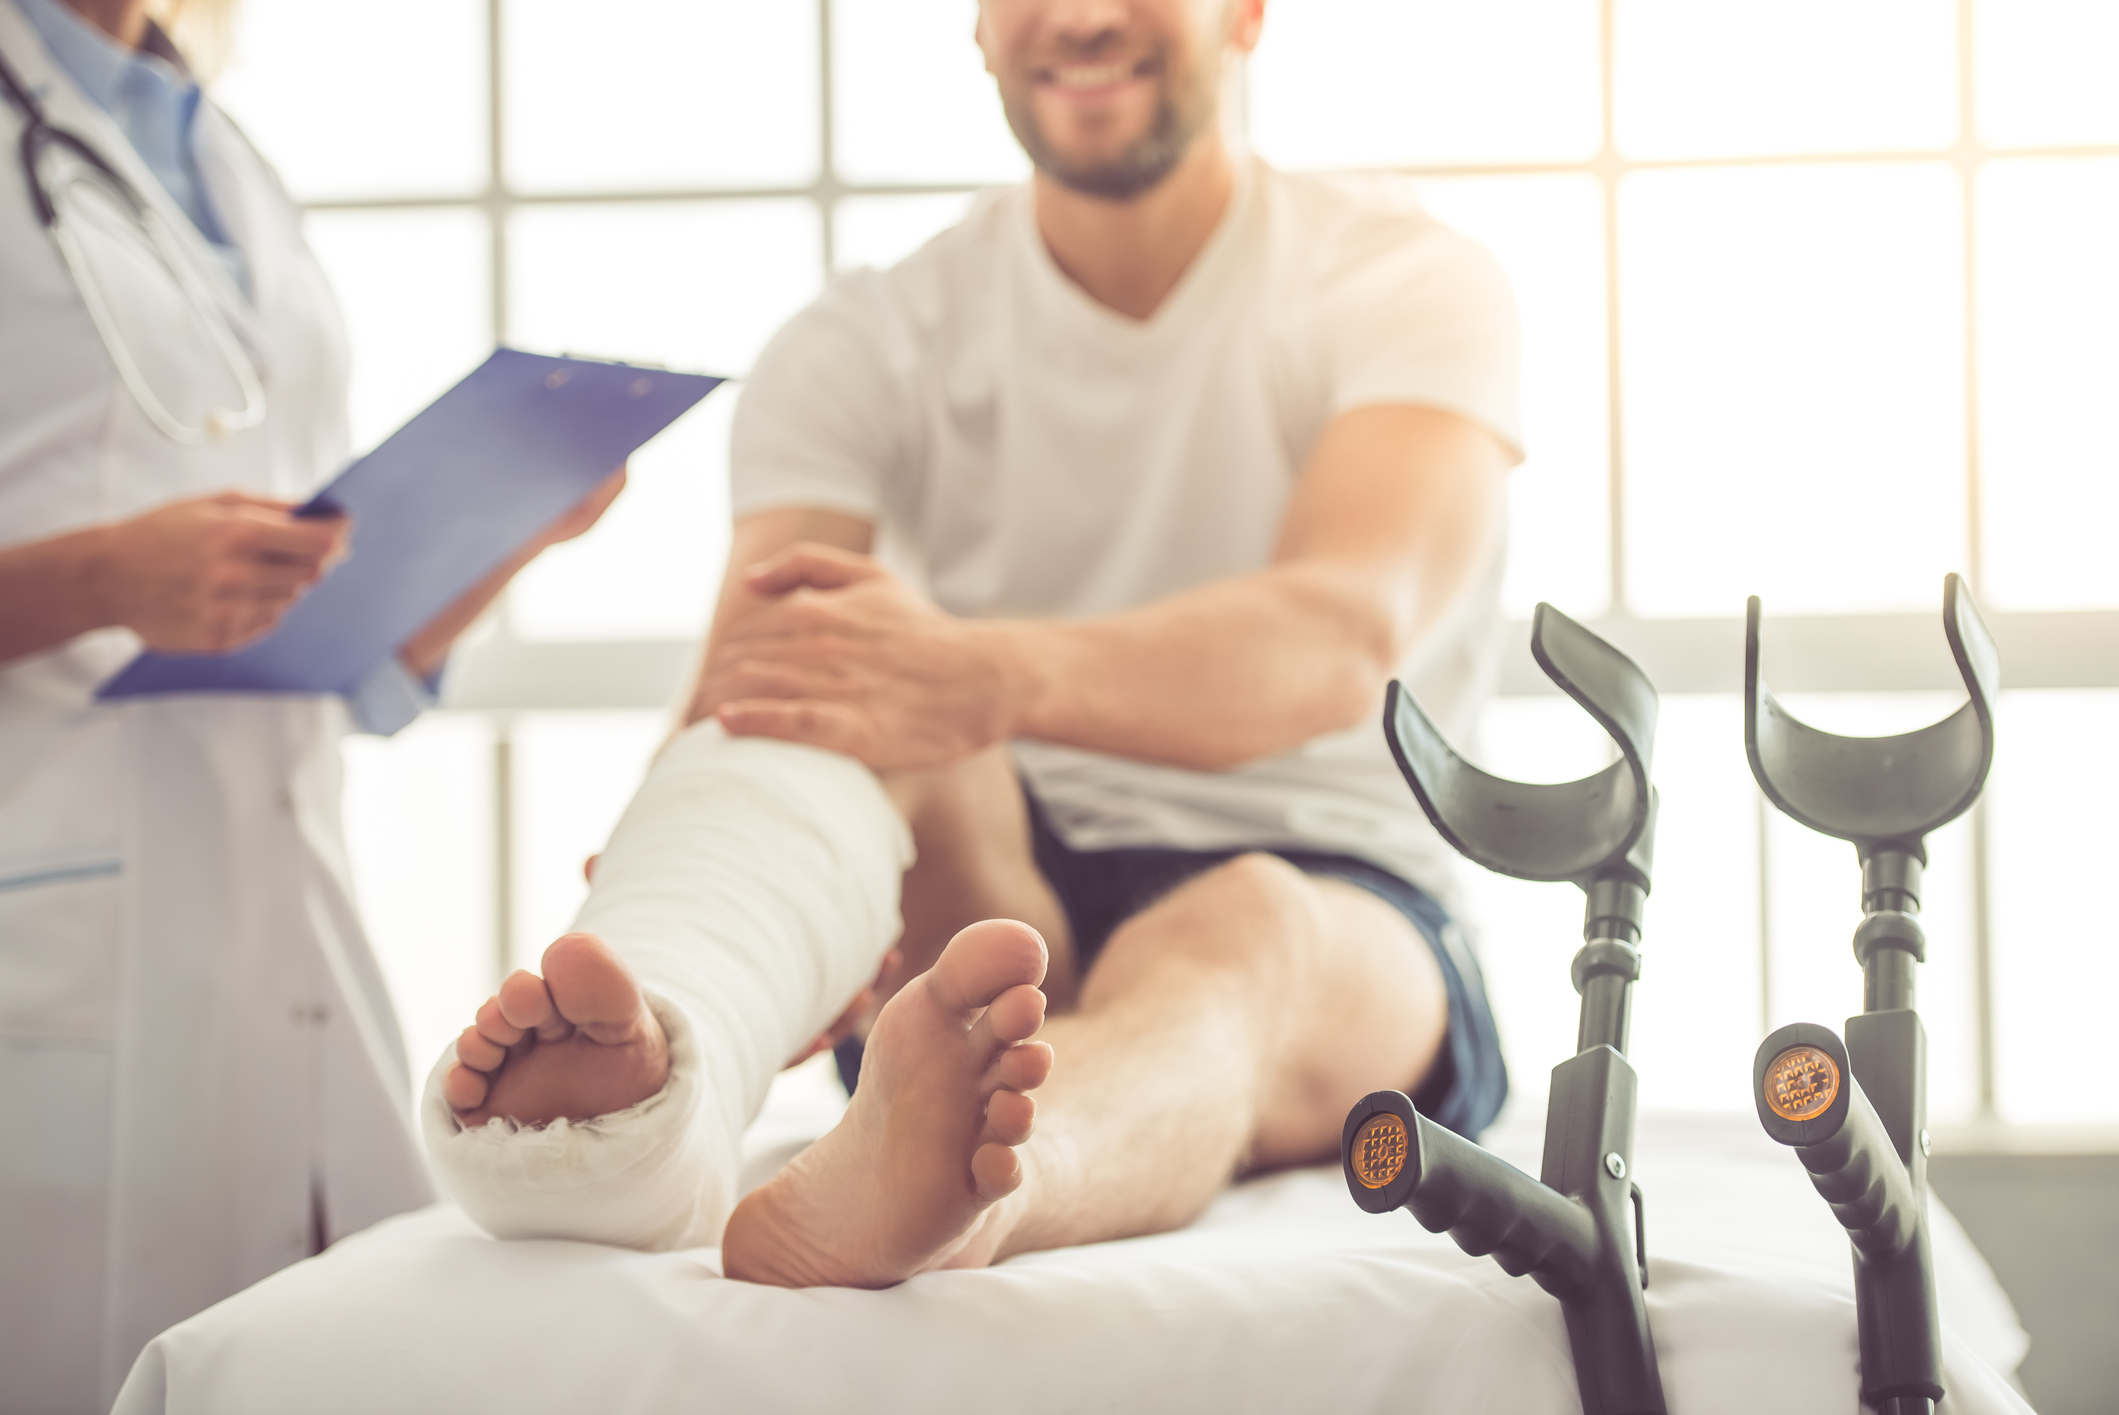 Doctor and patient in need of wilmington nc personal injury attorneys